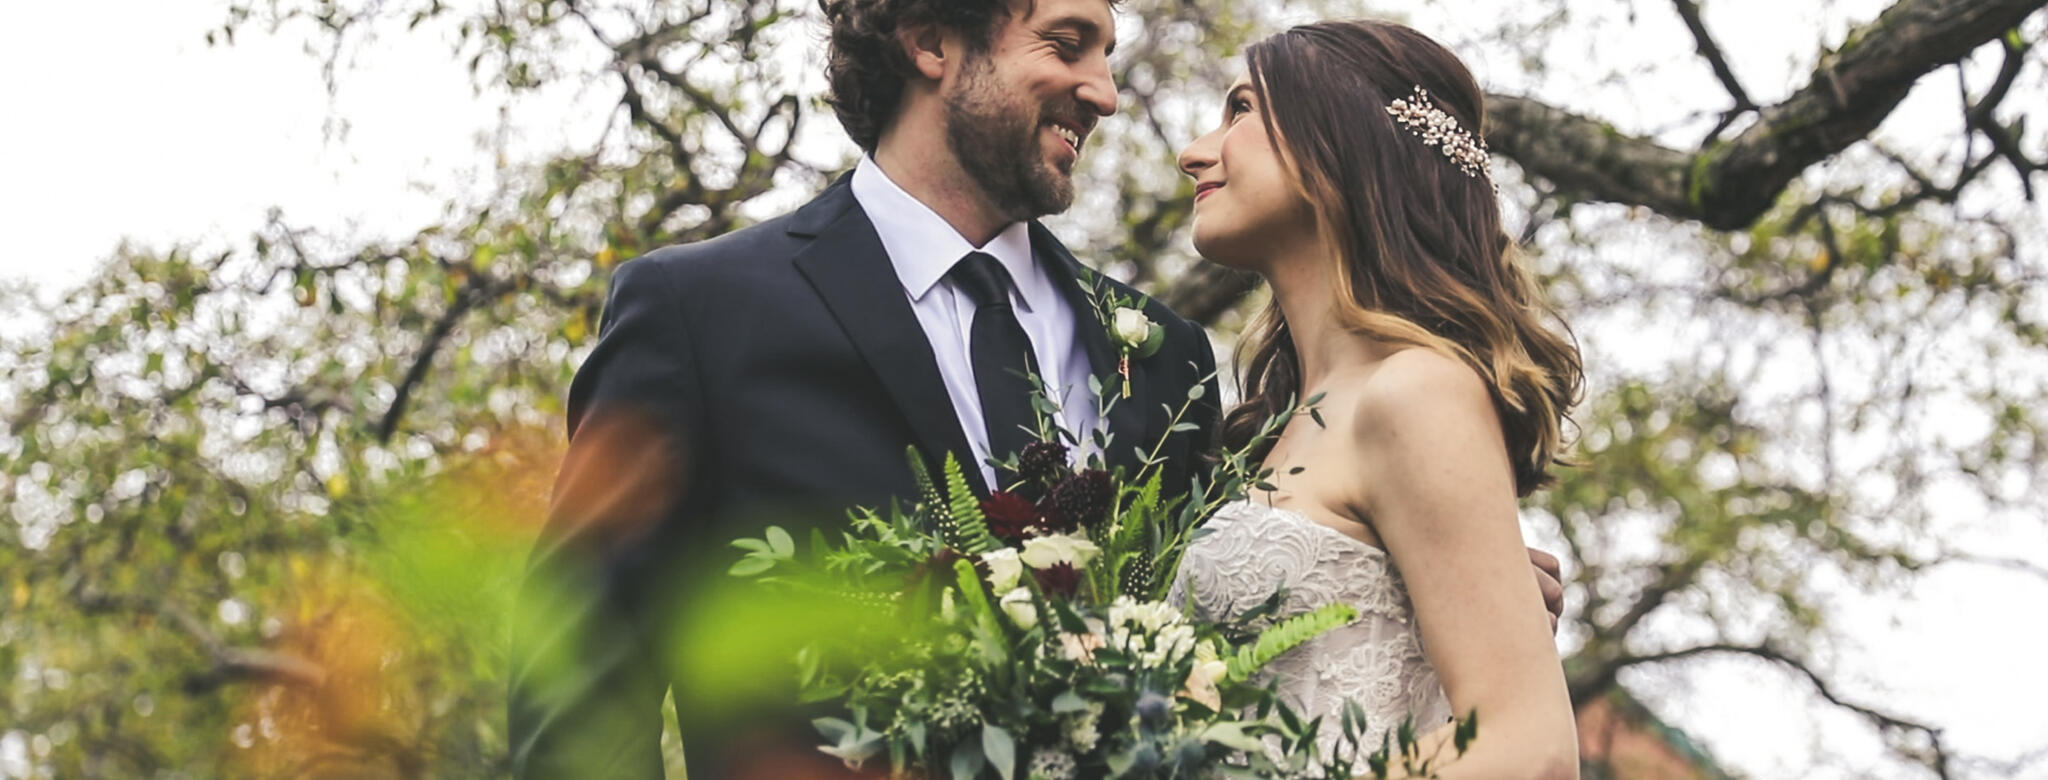 groom and bride outside with bouquet of flowers